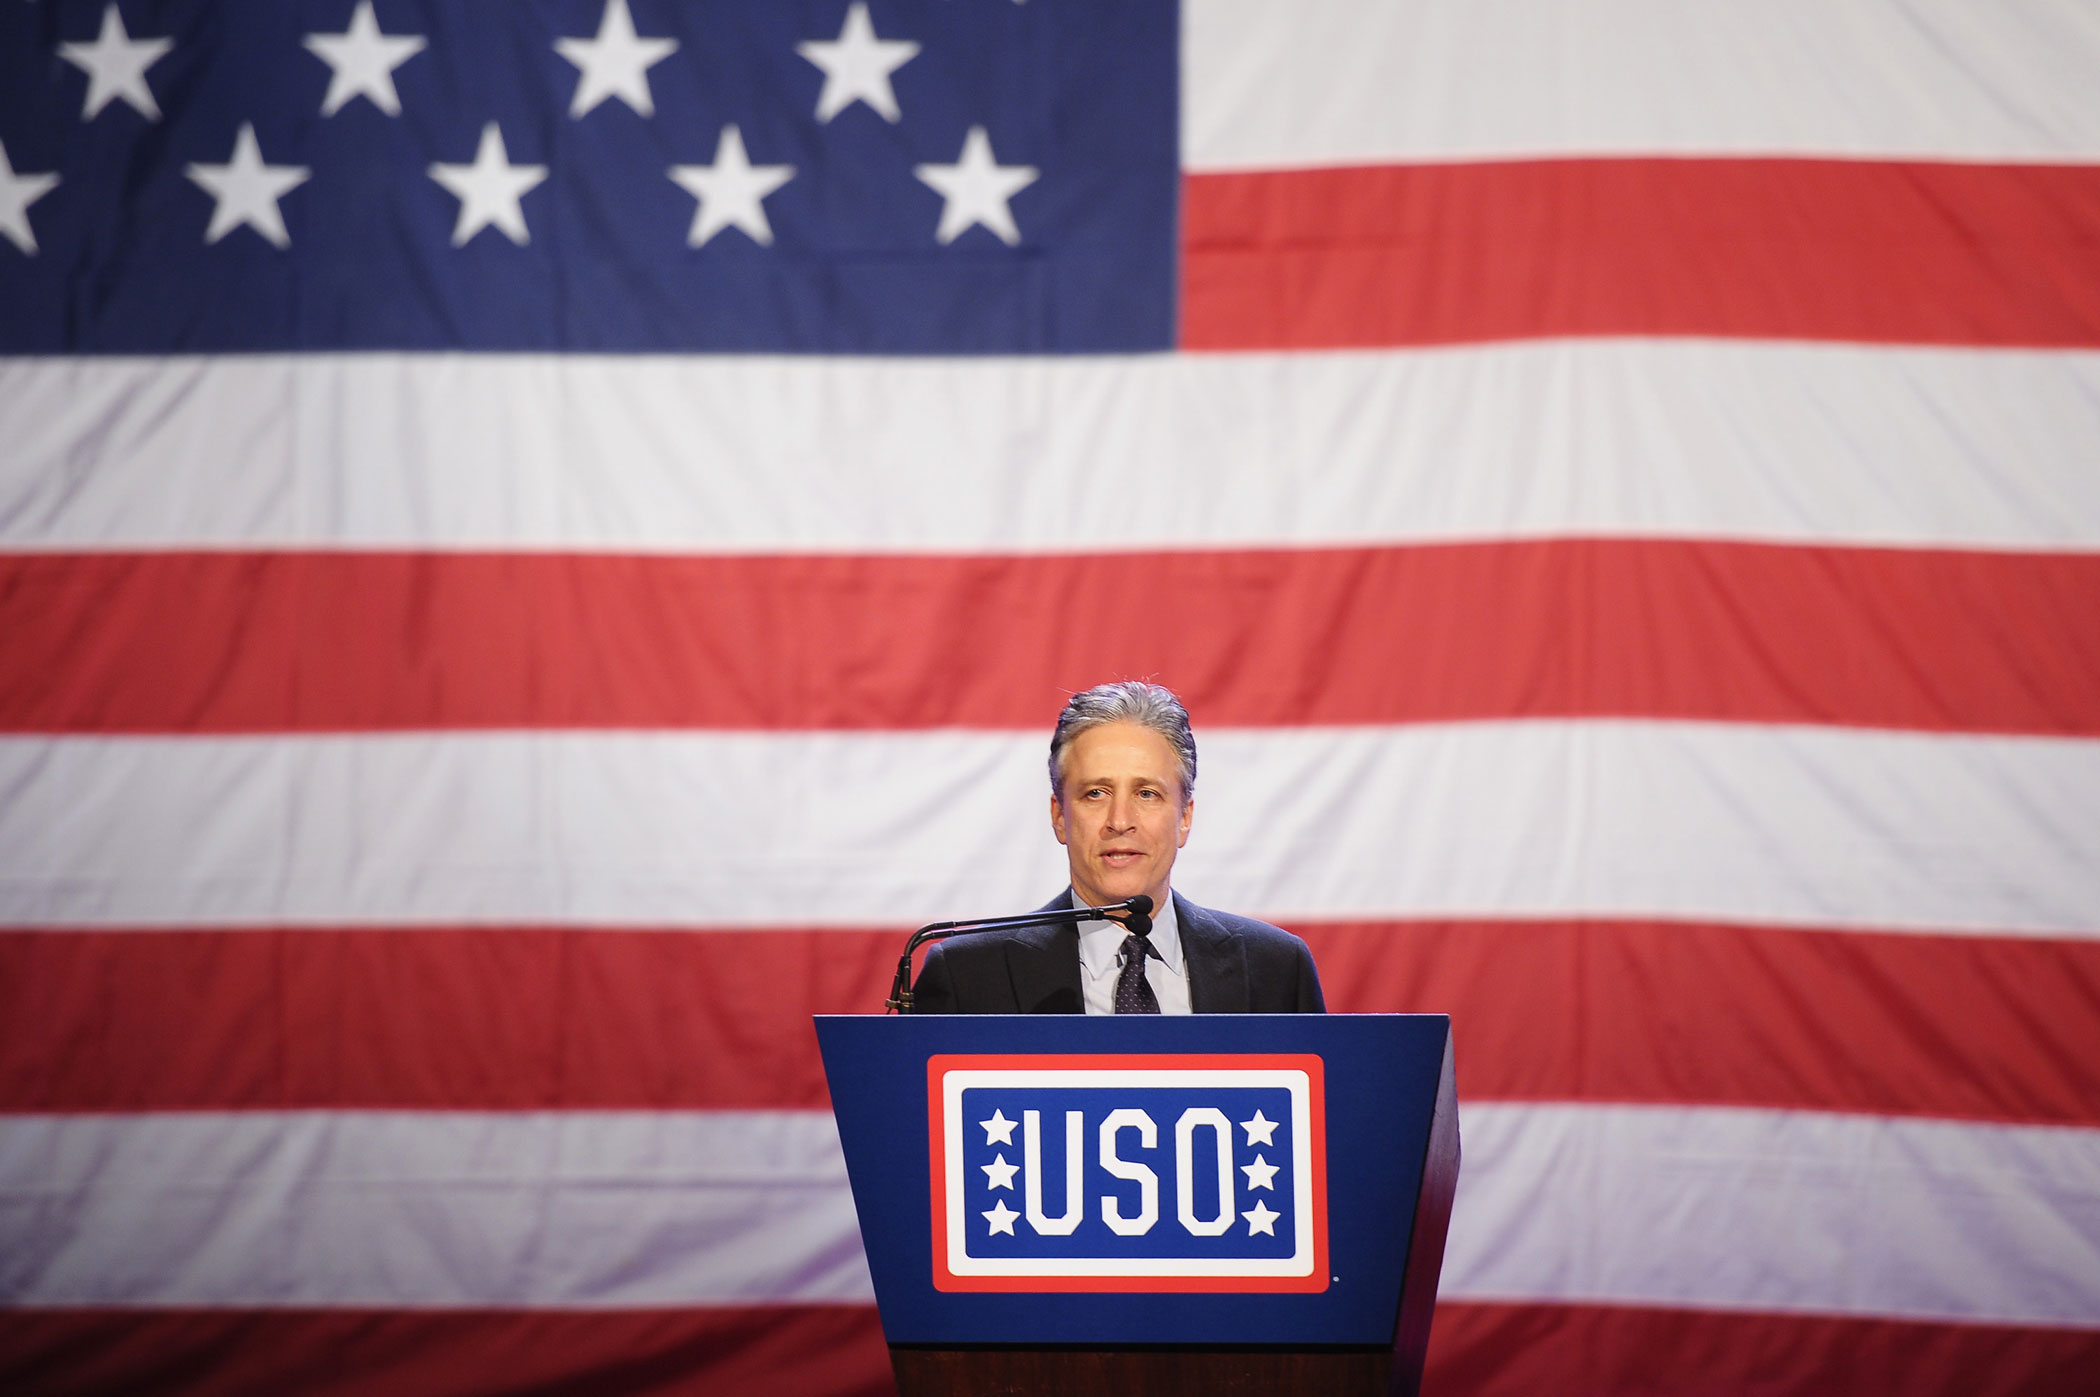 Jon Stewart speaks at the 51st USO Armed Forces Gala & Gold Medal Dinner on Dec. 13, 2012 in New York City.